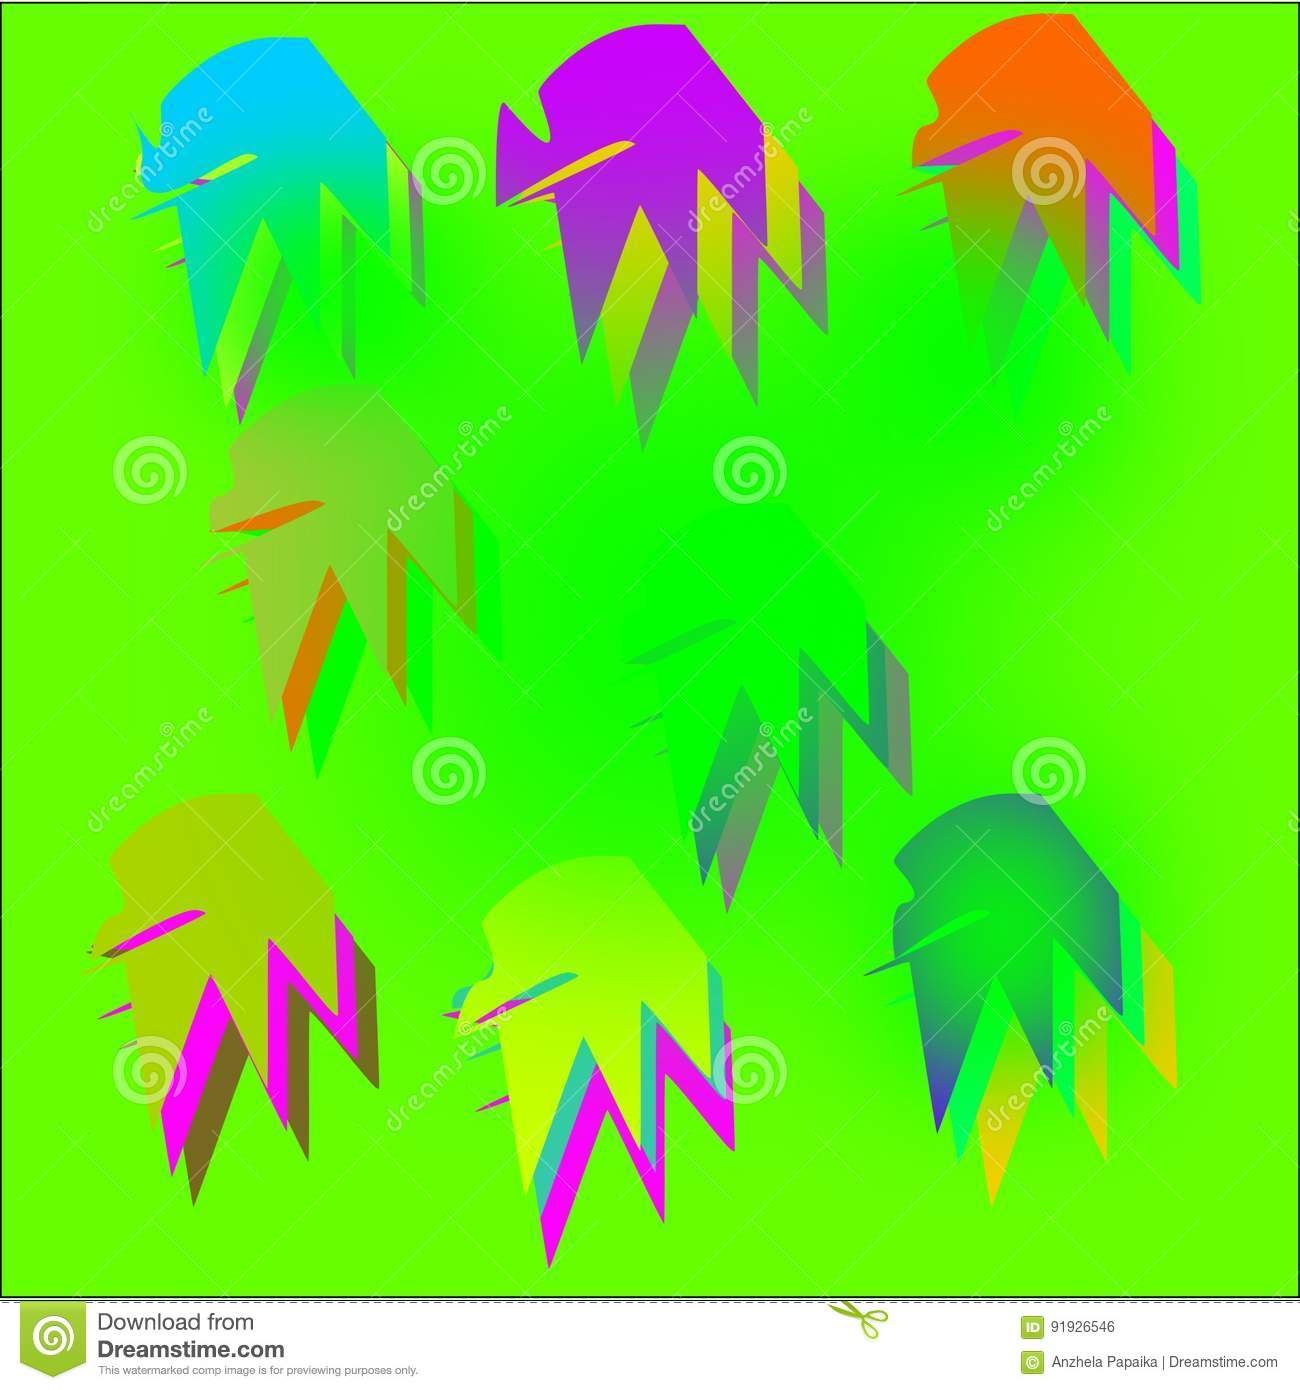 Creative Over Abstract Colored Backgrounds For Greeting Cards And